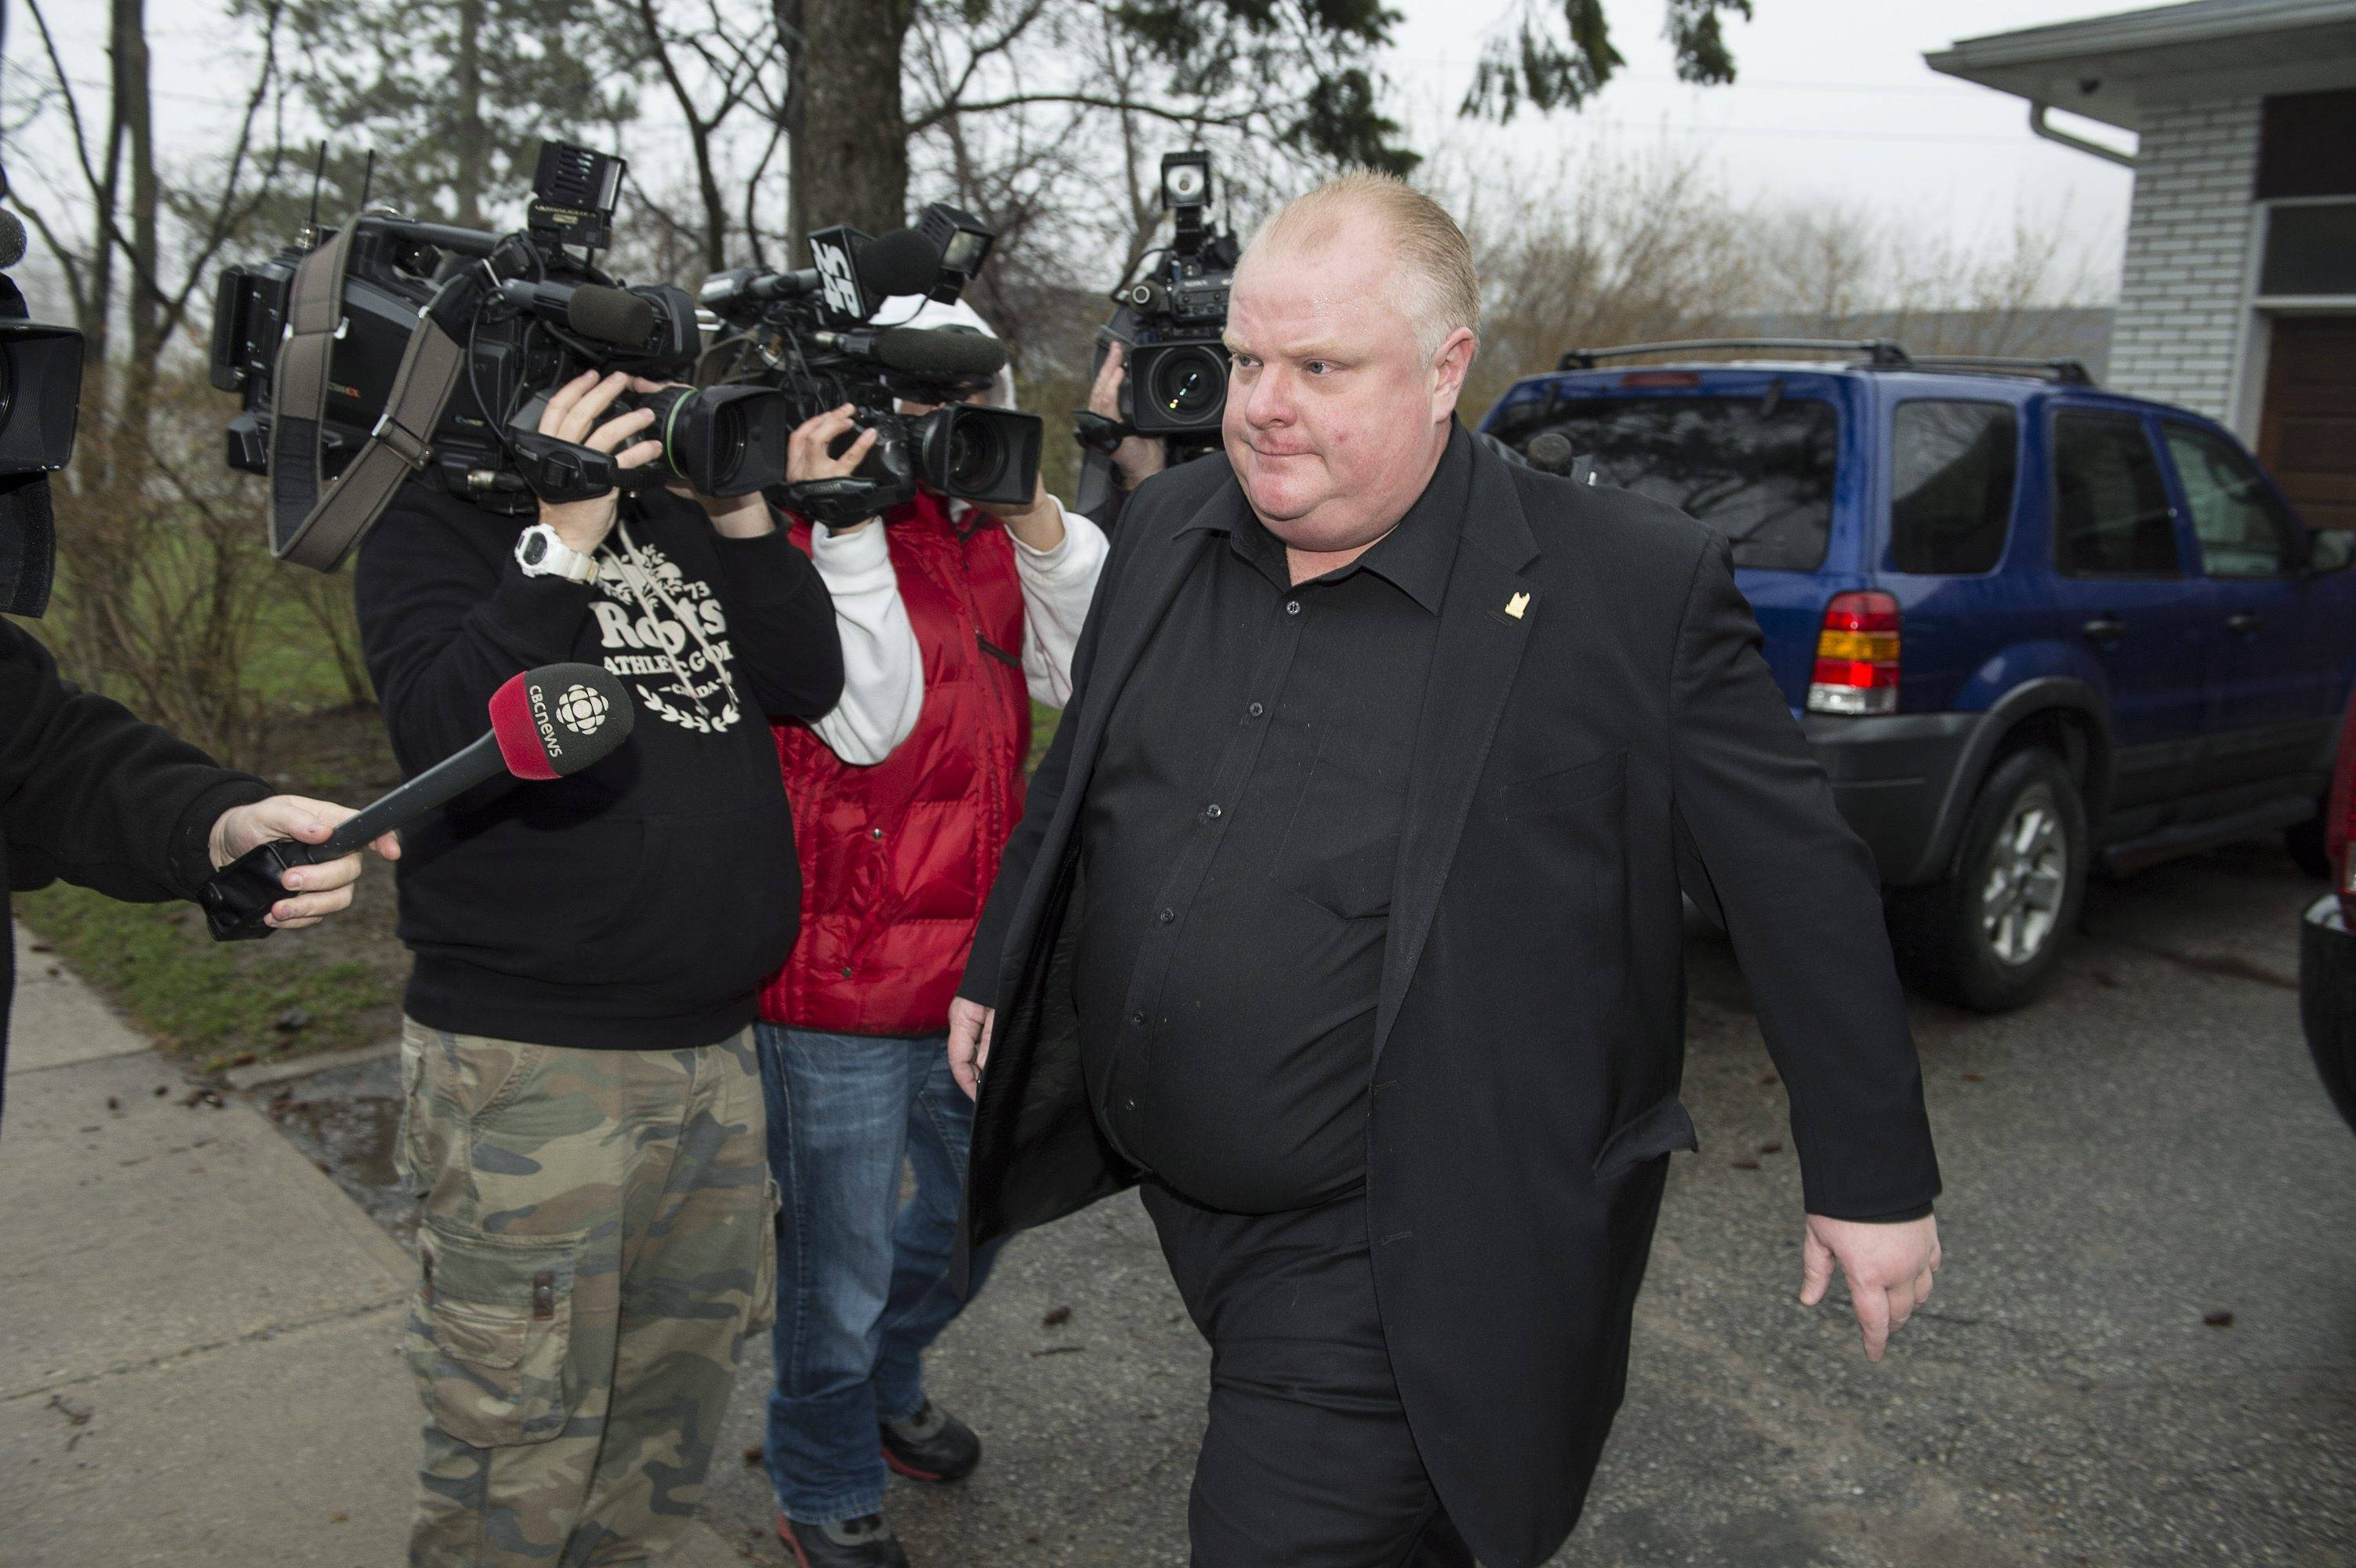 Toronto Mayor Rob Ford will take an immediate leave of absence to seek help for alcohol, he said, as a report surfaced about a second video of the mayor smoking what appears to be crack cocaine.